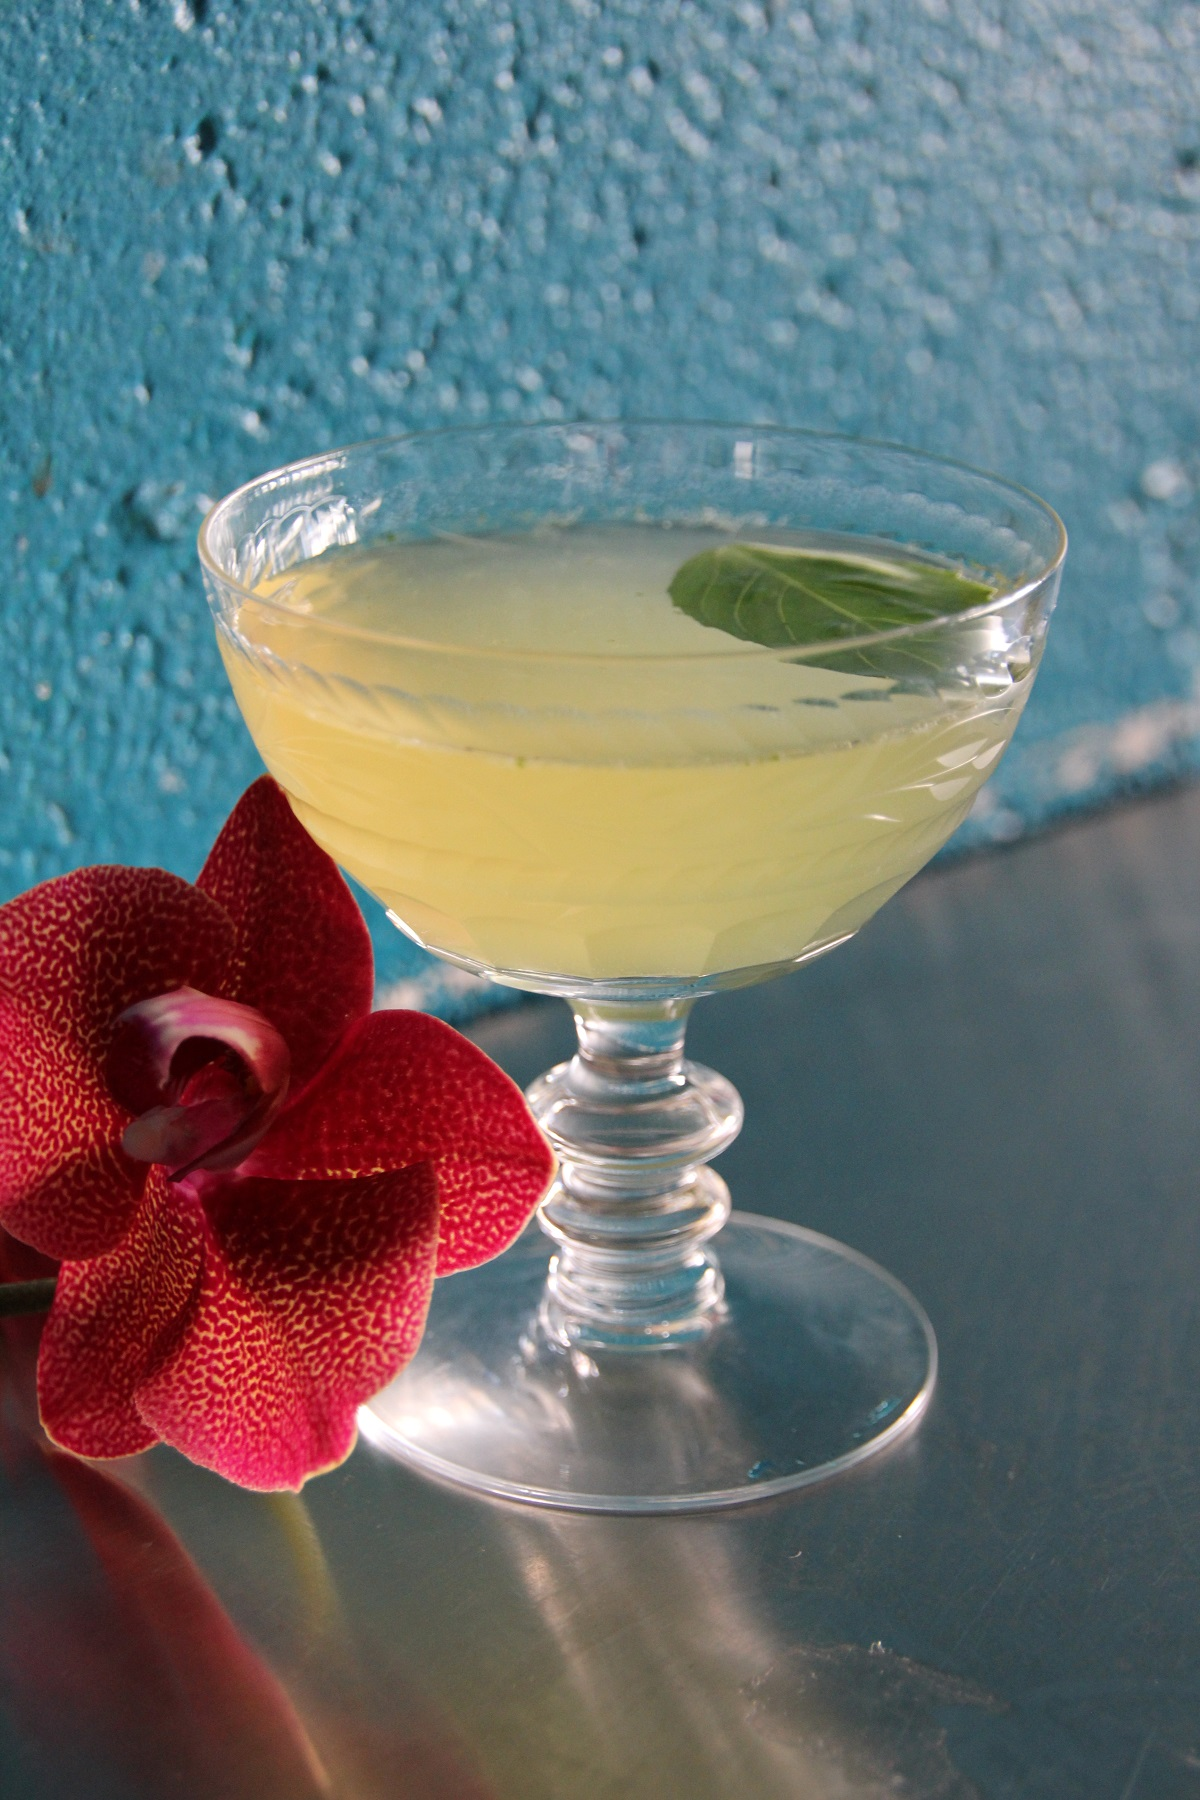 Cocktail with flower